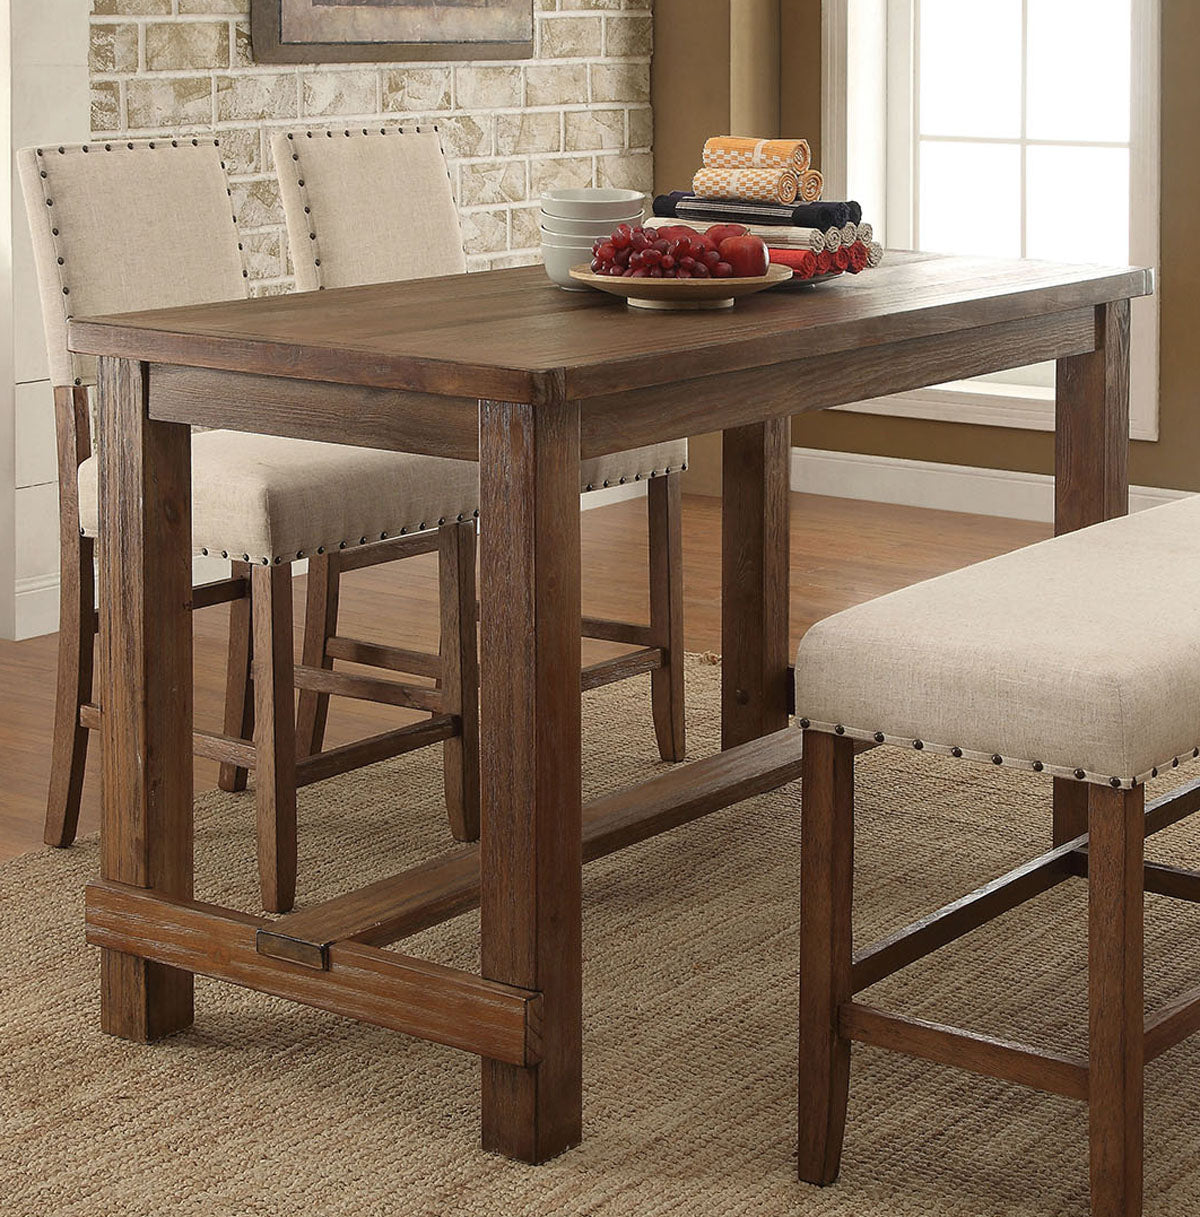 Sania CM3324PT Transitional Natural Tone Finish Counter Height Table